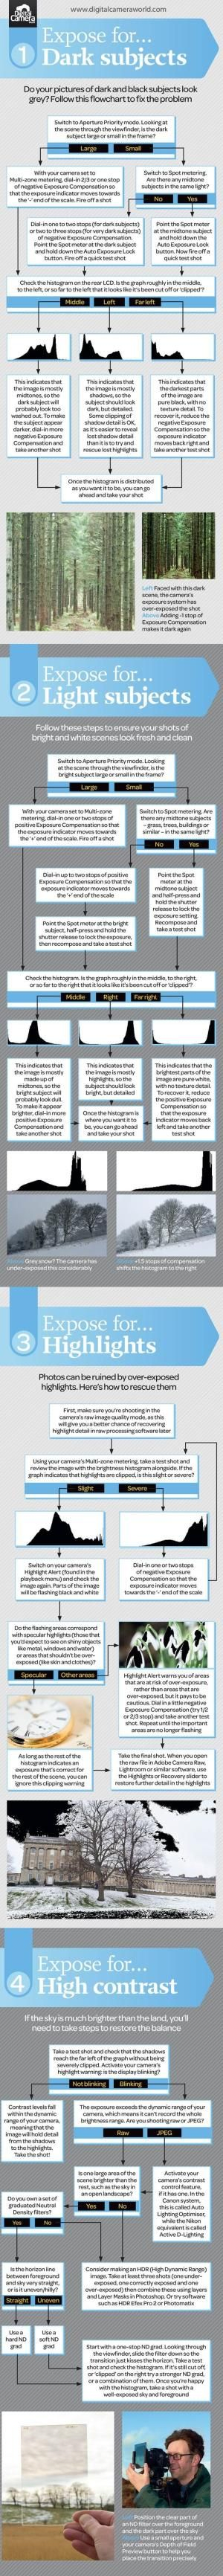 Cheat Sheet: How to Get Metering and Exposure Right by Jody Maurine Kemble Jarvis